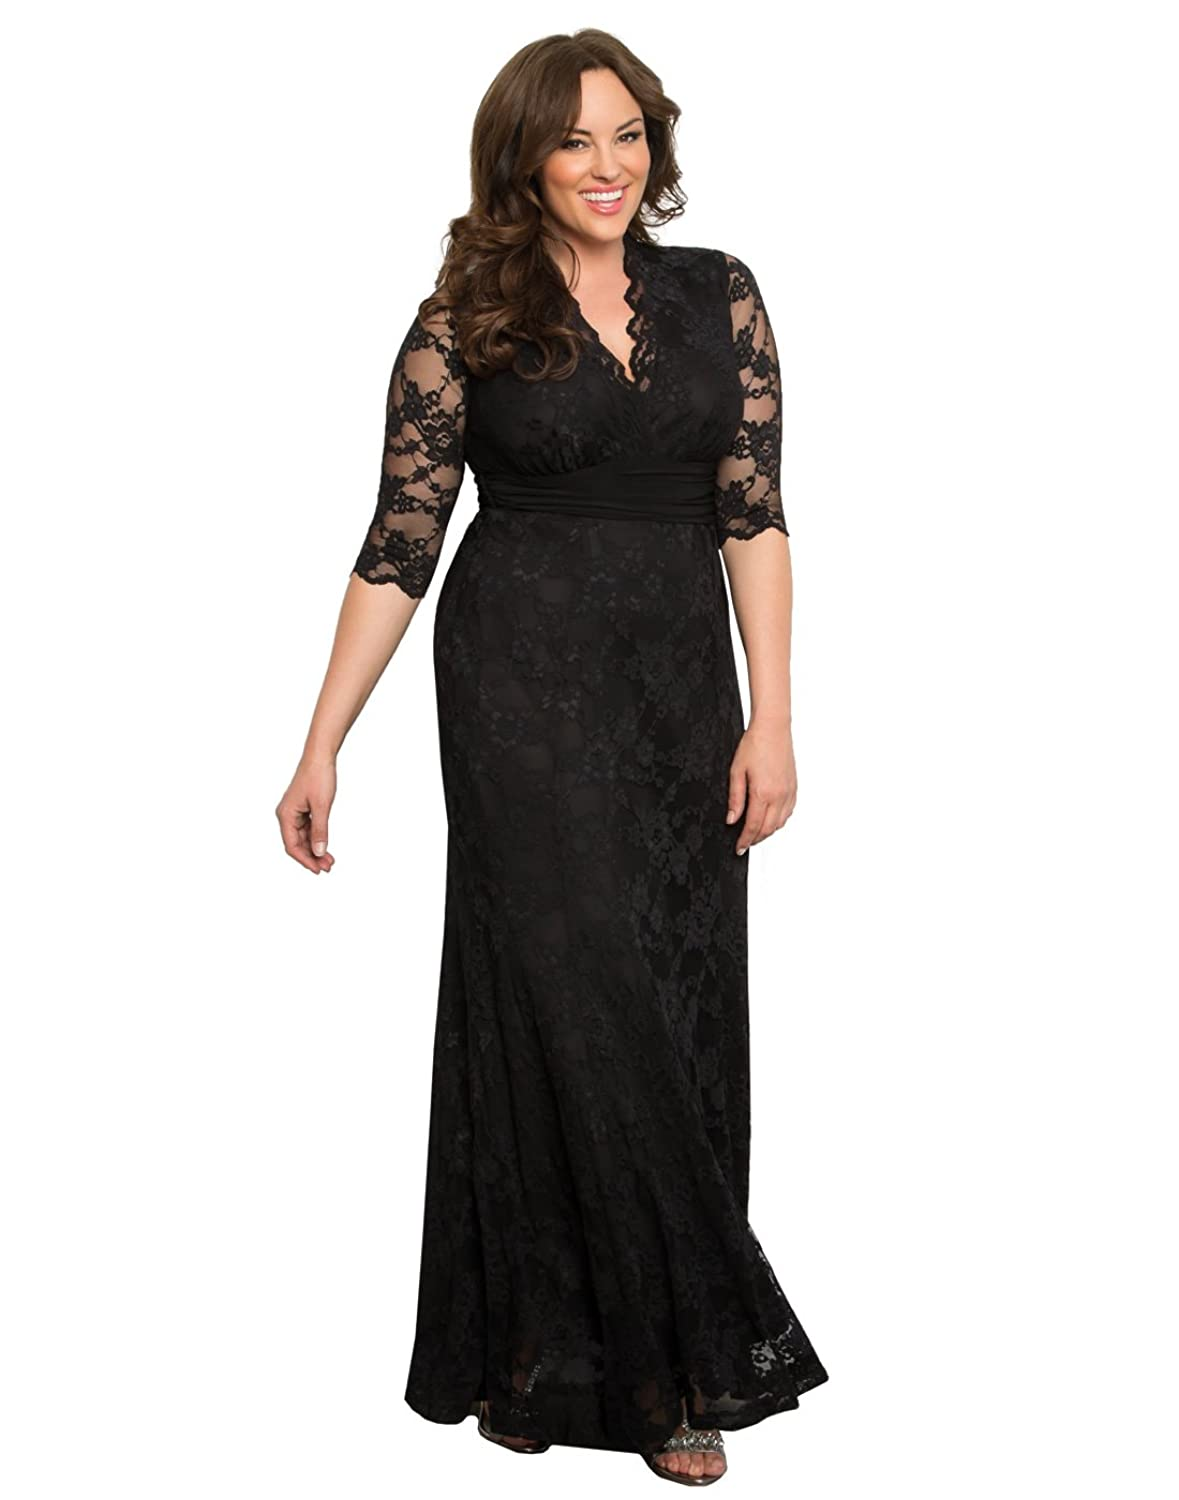 Plus Size Mother of the Bride Dresses | Amazon.com